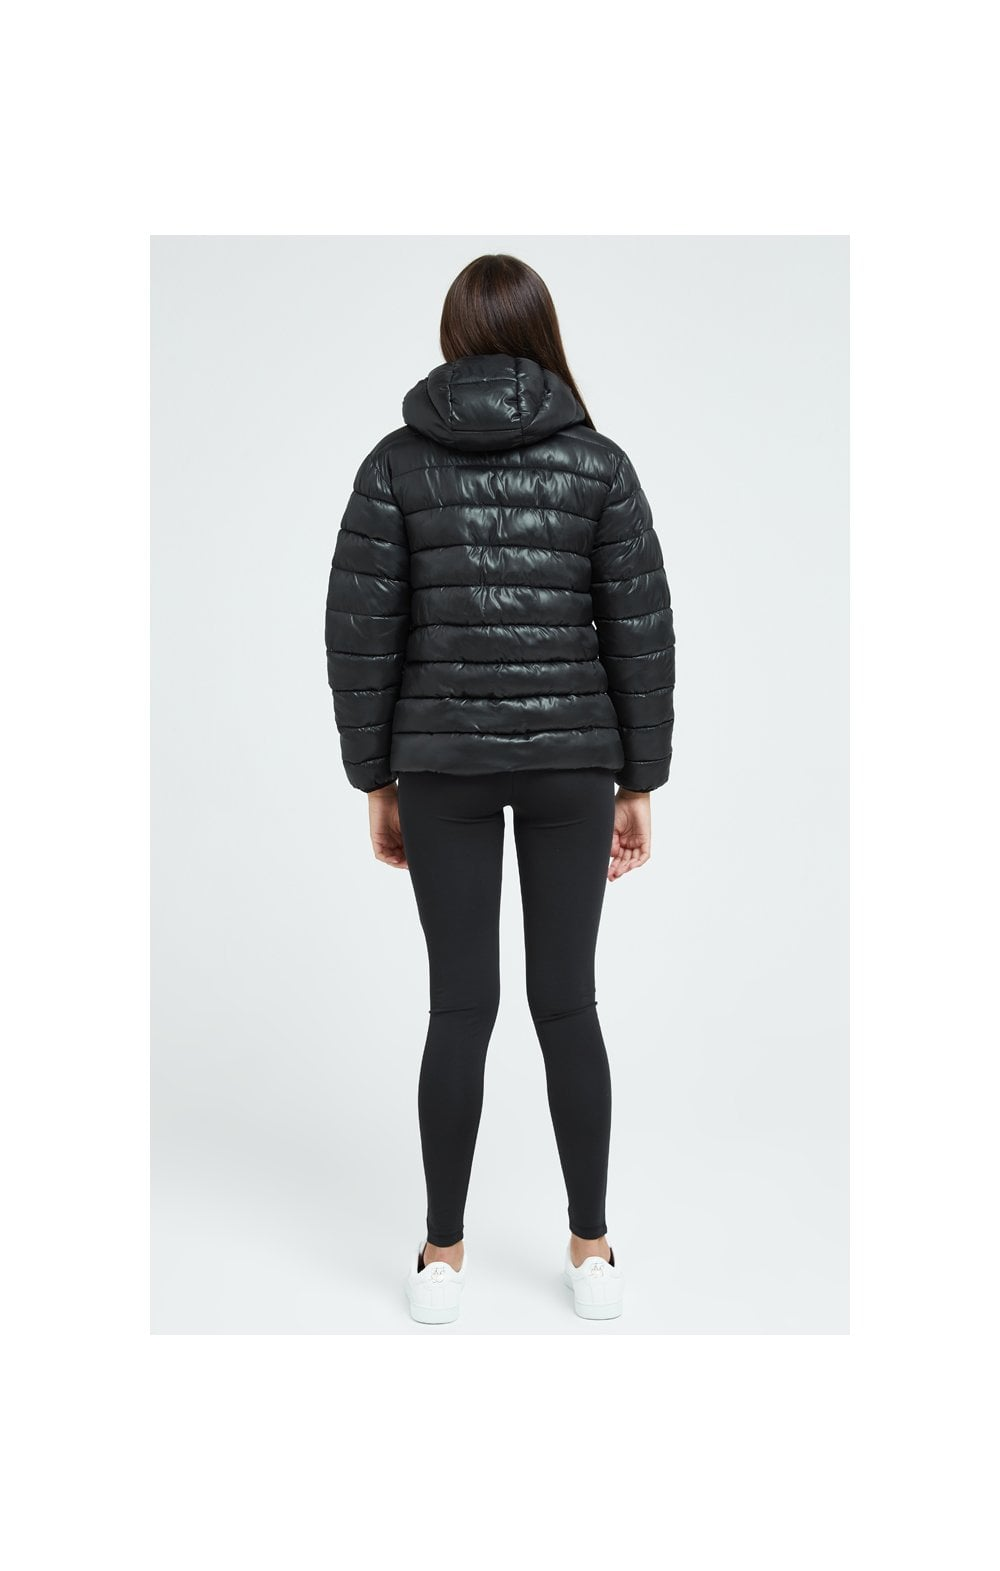 Illusive London Bubble Jacket - Black (6)